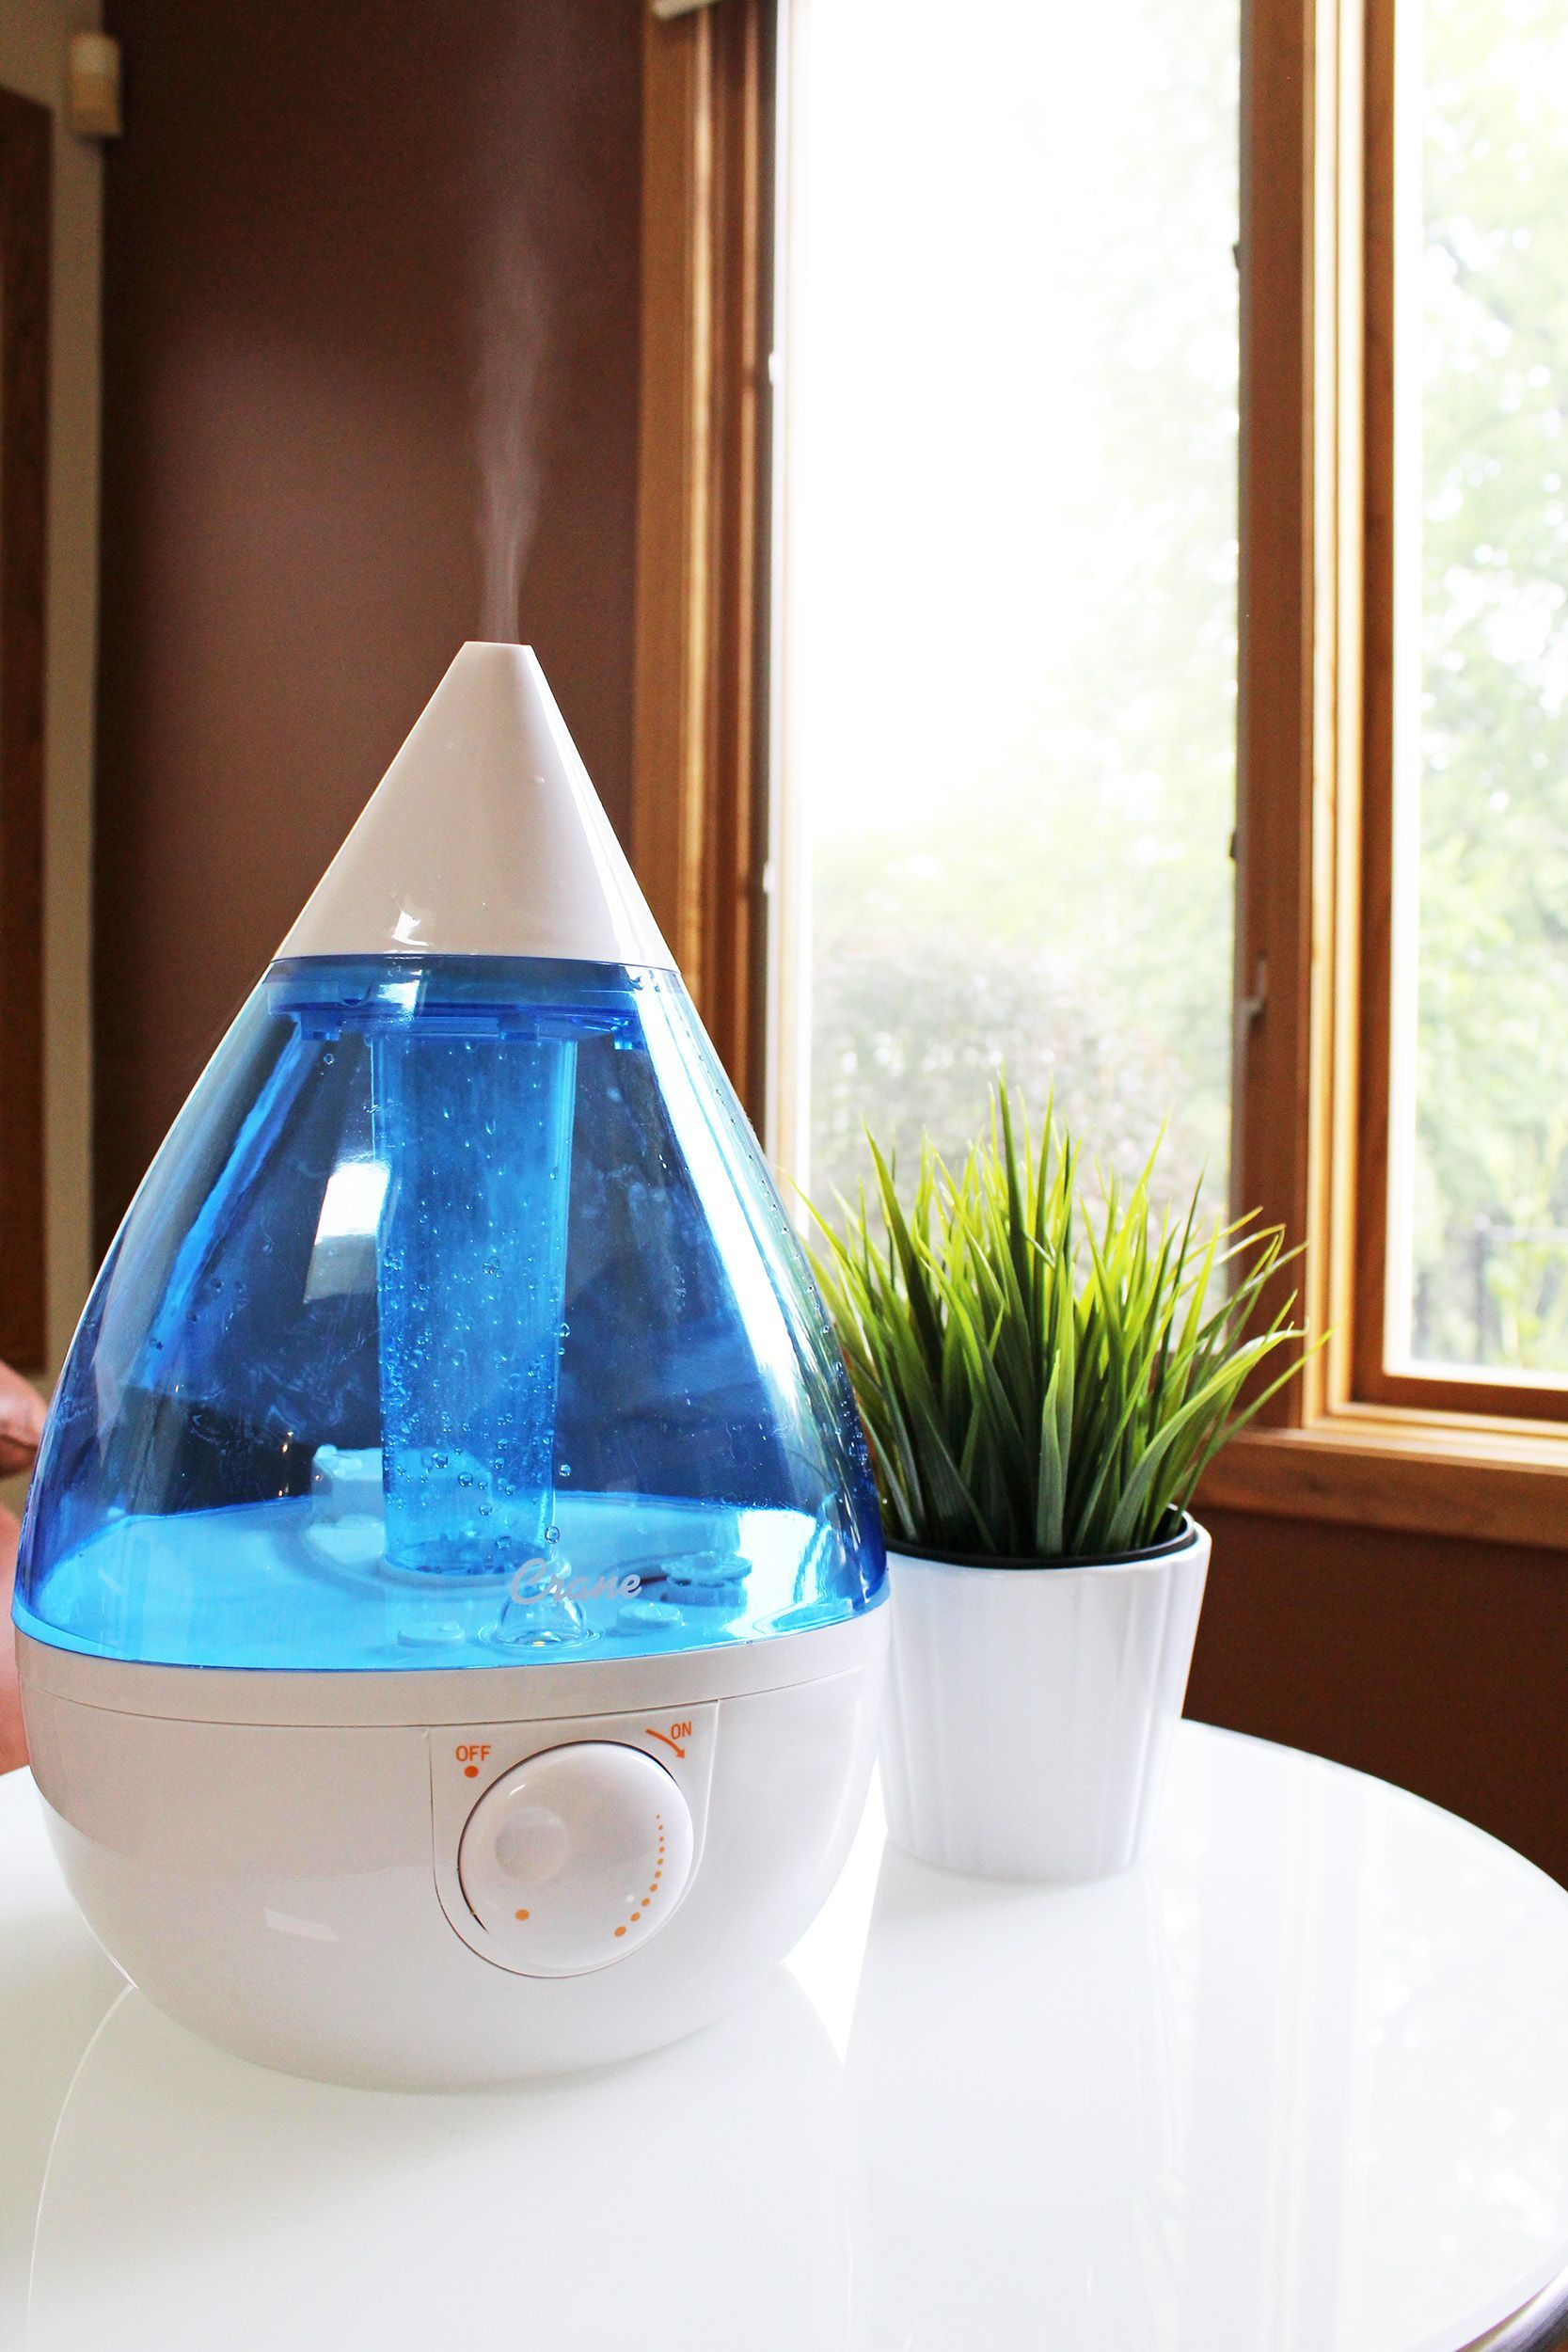 Have you added a humidifier to your baby's room yet? The